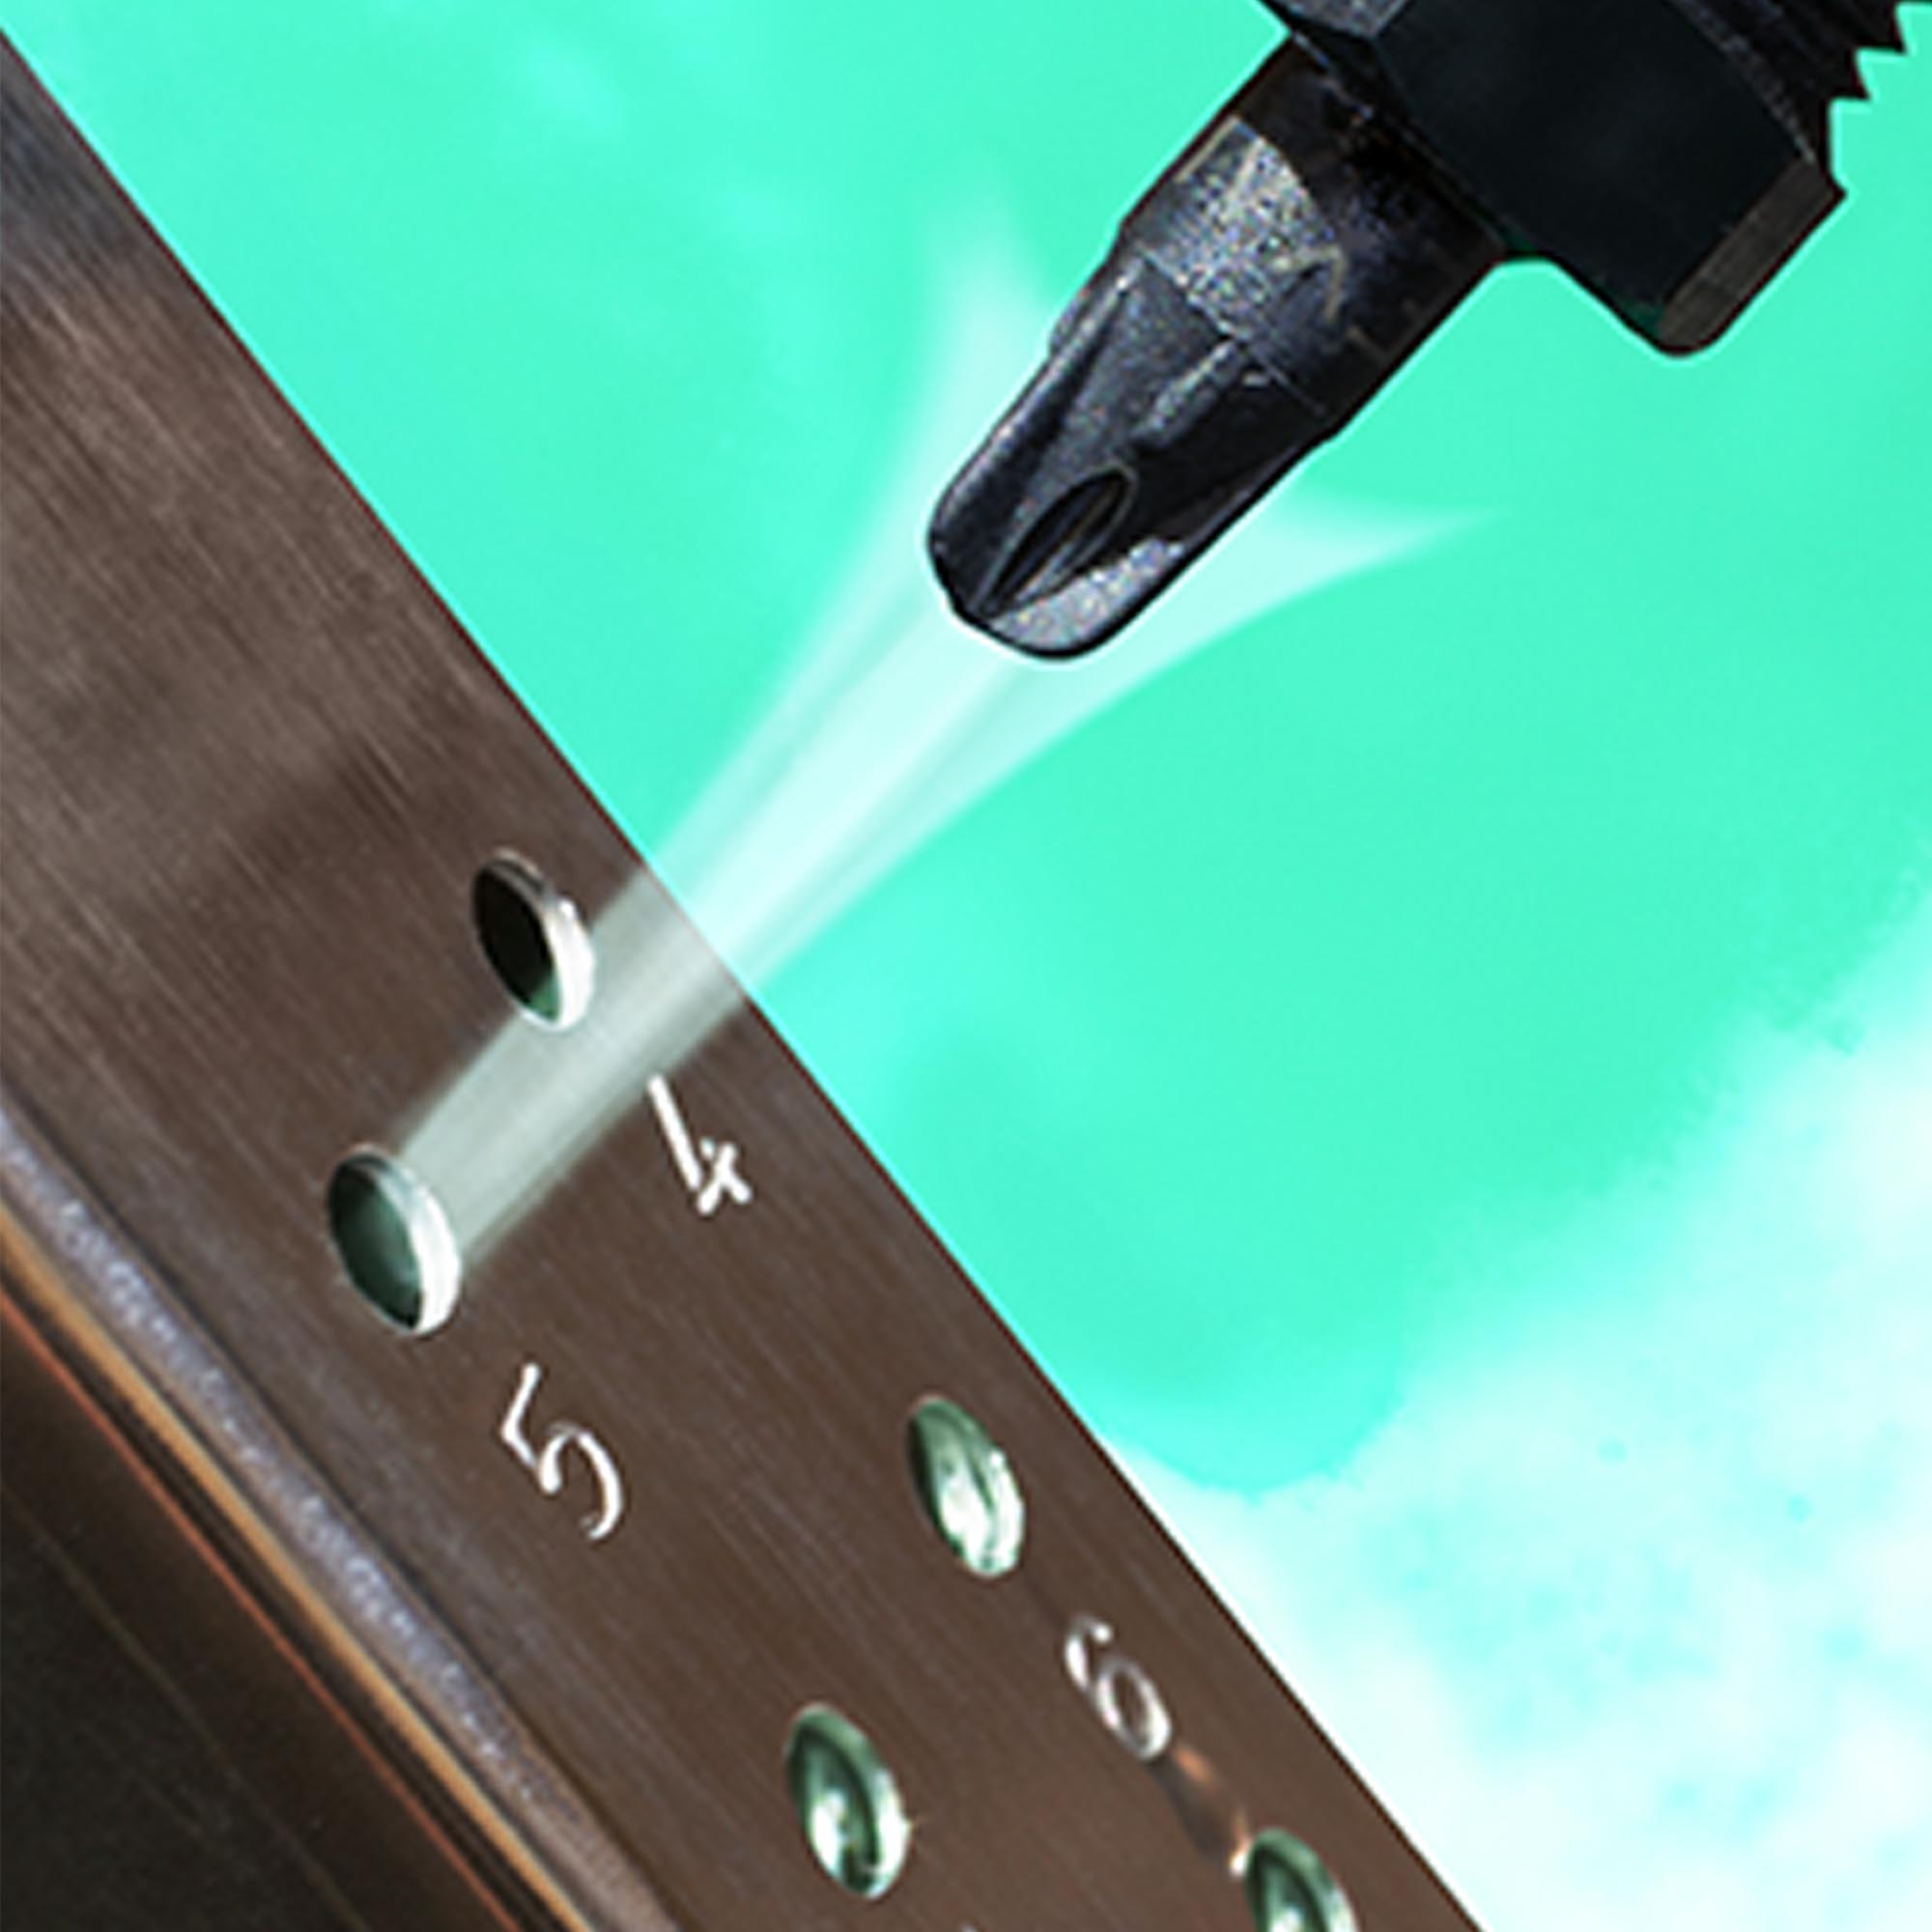 This PEEK Pico Super Air Nozzle is blowing dust and debris from this metal punching operation.